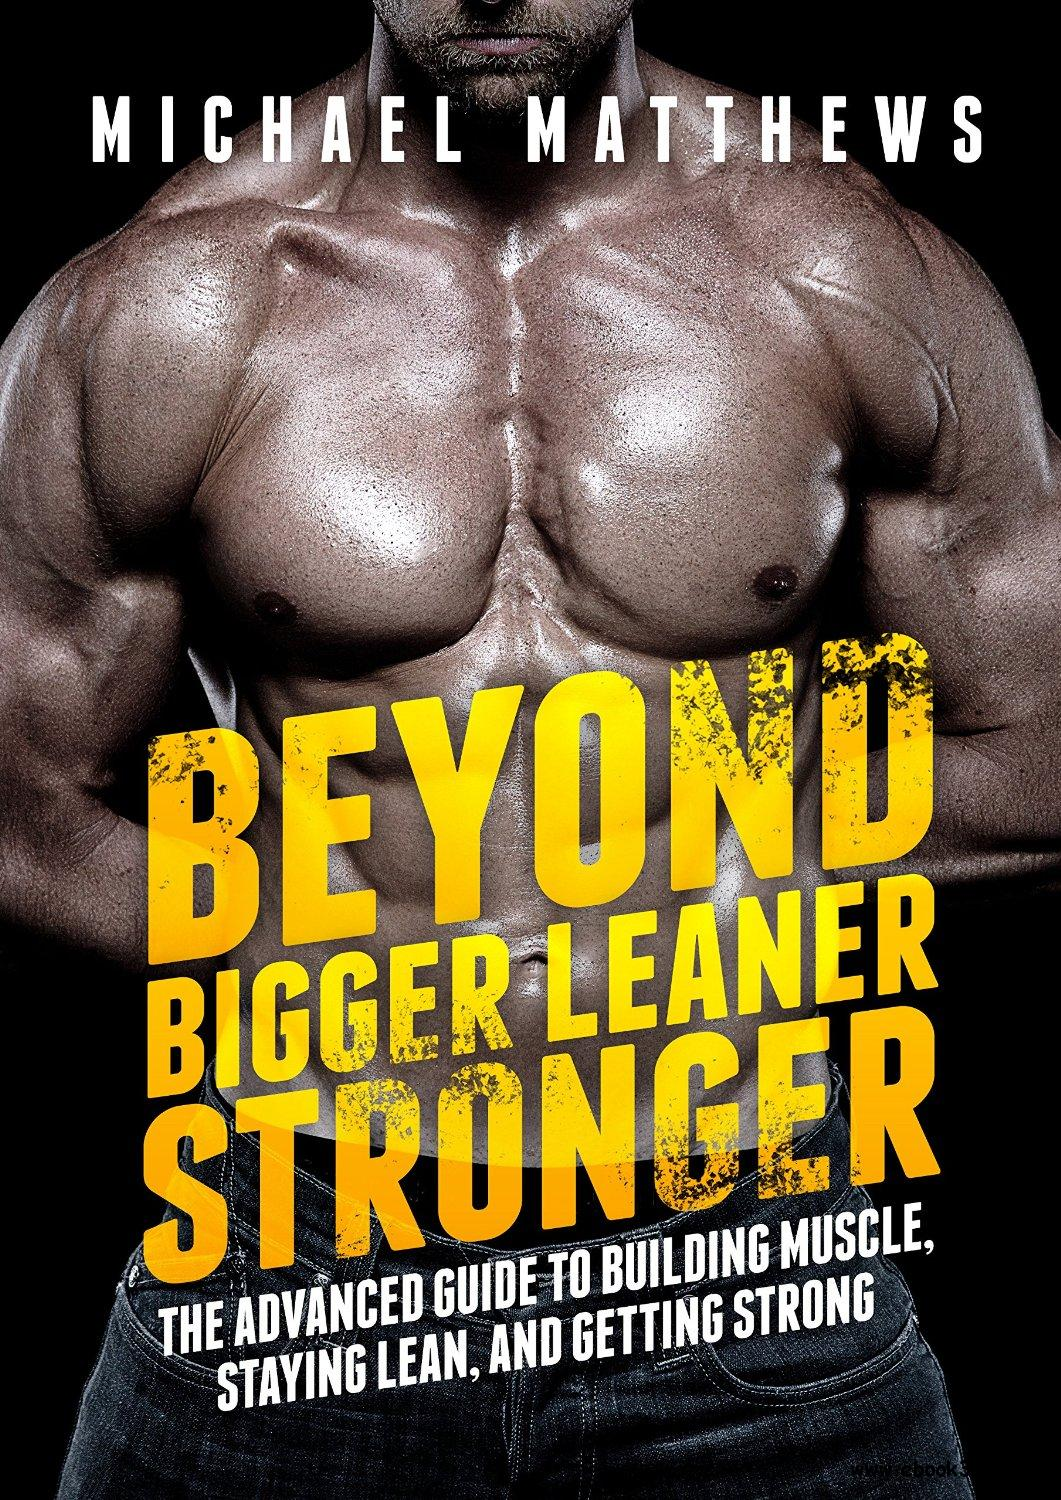 Beyond Bigger Leaner Stronger: The Advanced Guide to Building Muscle, Staying Lean, and Getting Strong download dree